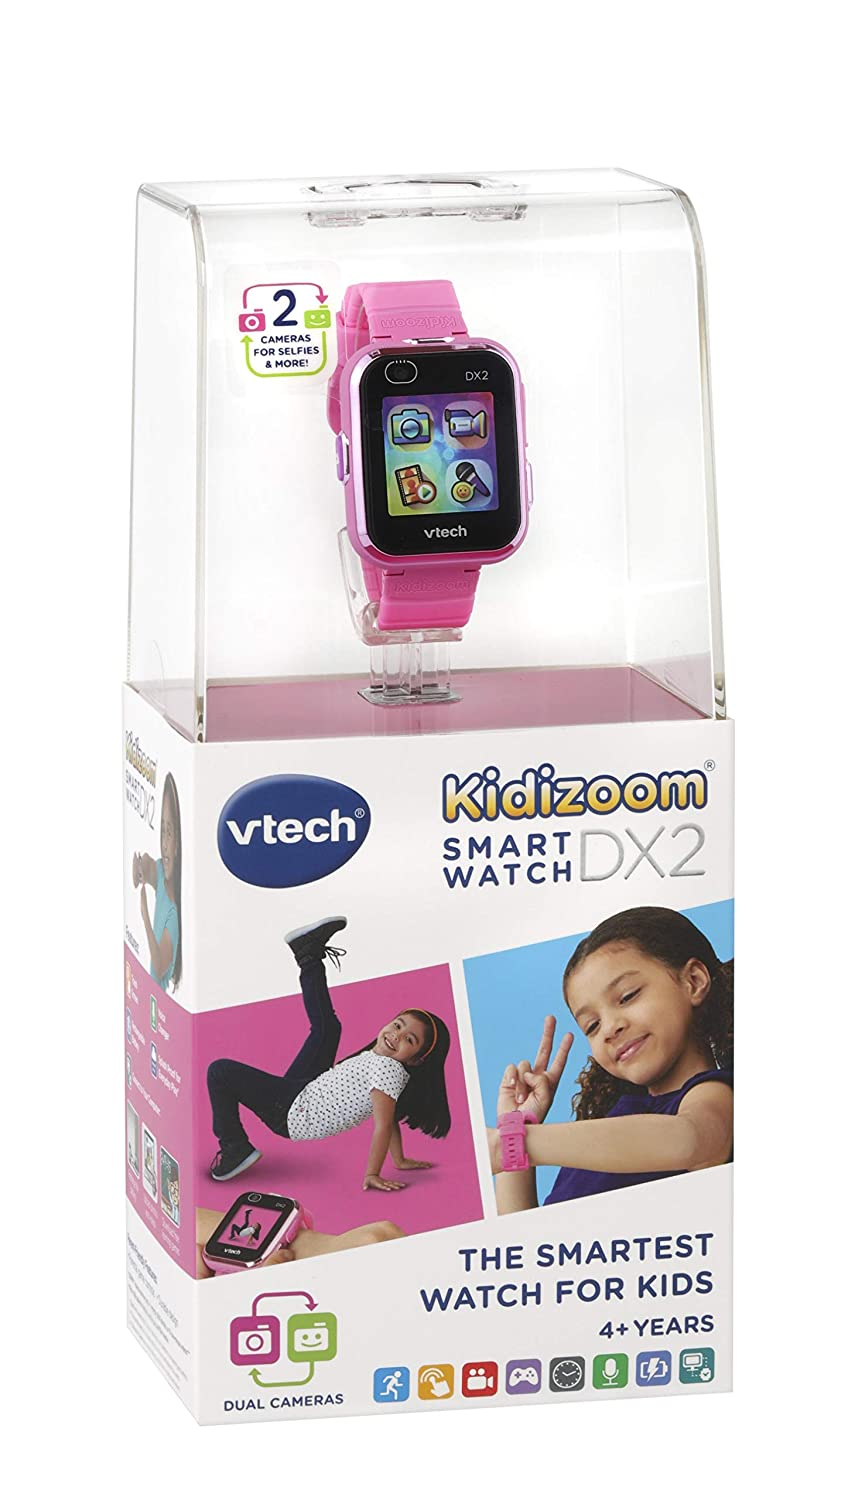 Amazon.com: VTech Kidizoom Smart Watch DX2 with Dual Camera ...